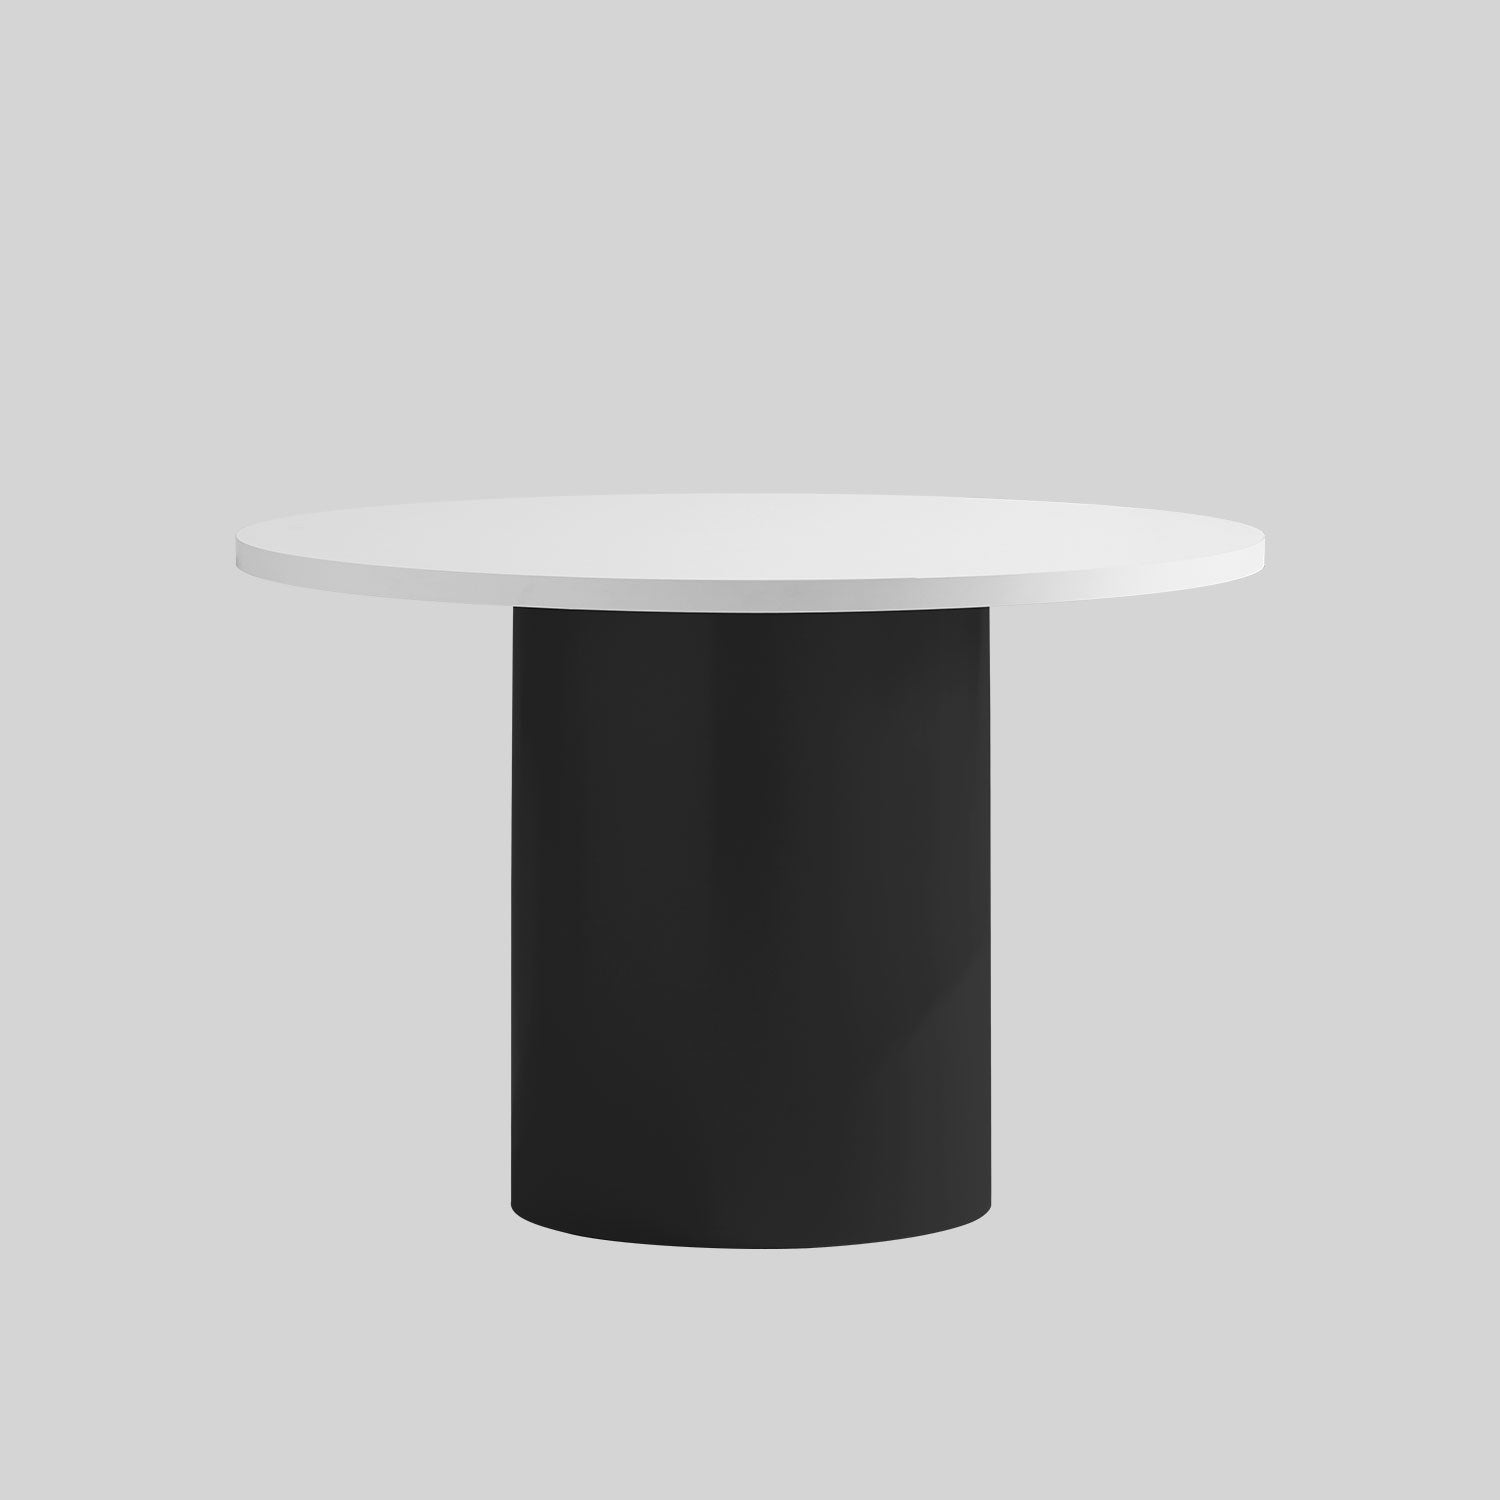 Dial Dining Table | Black, White or Timber Indoor or Outdoor Use | DesignByThem